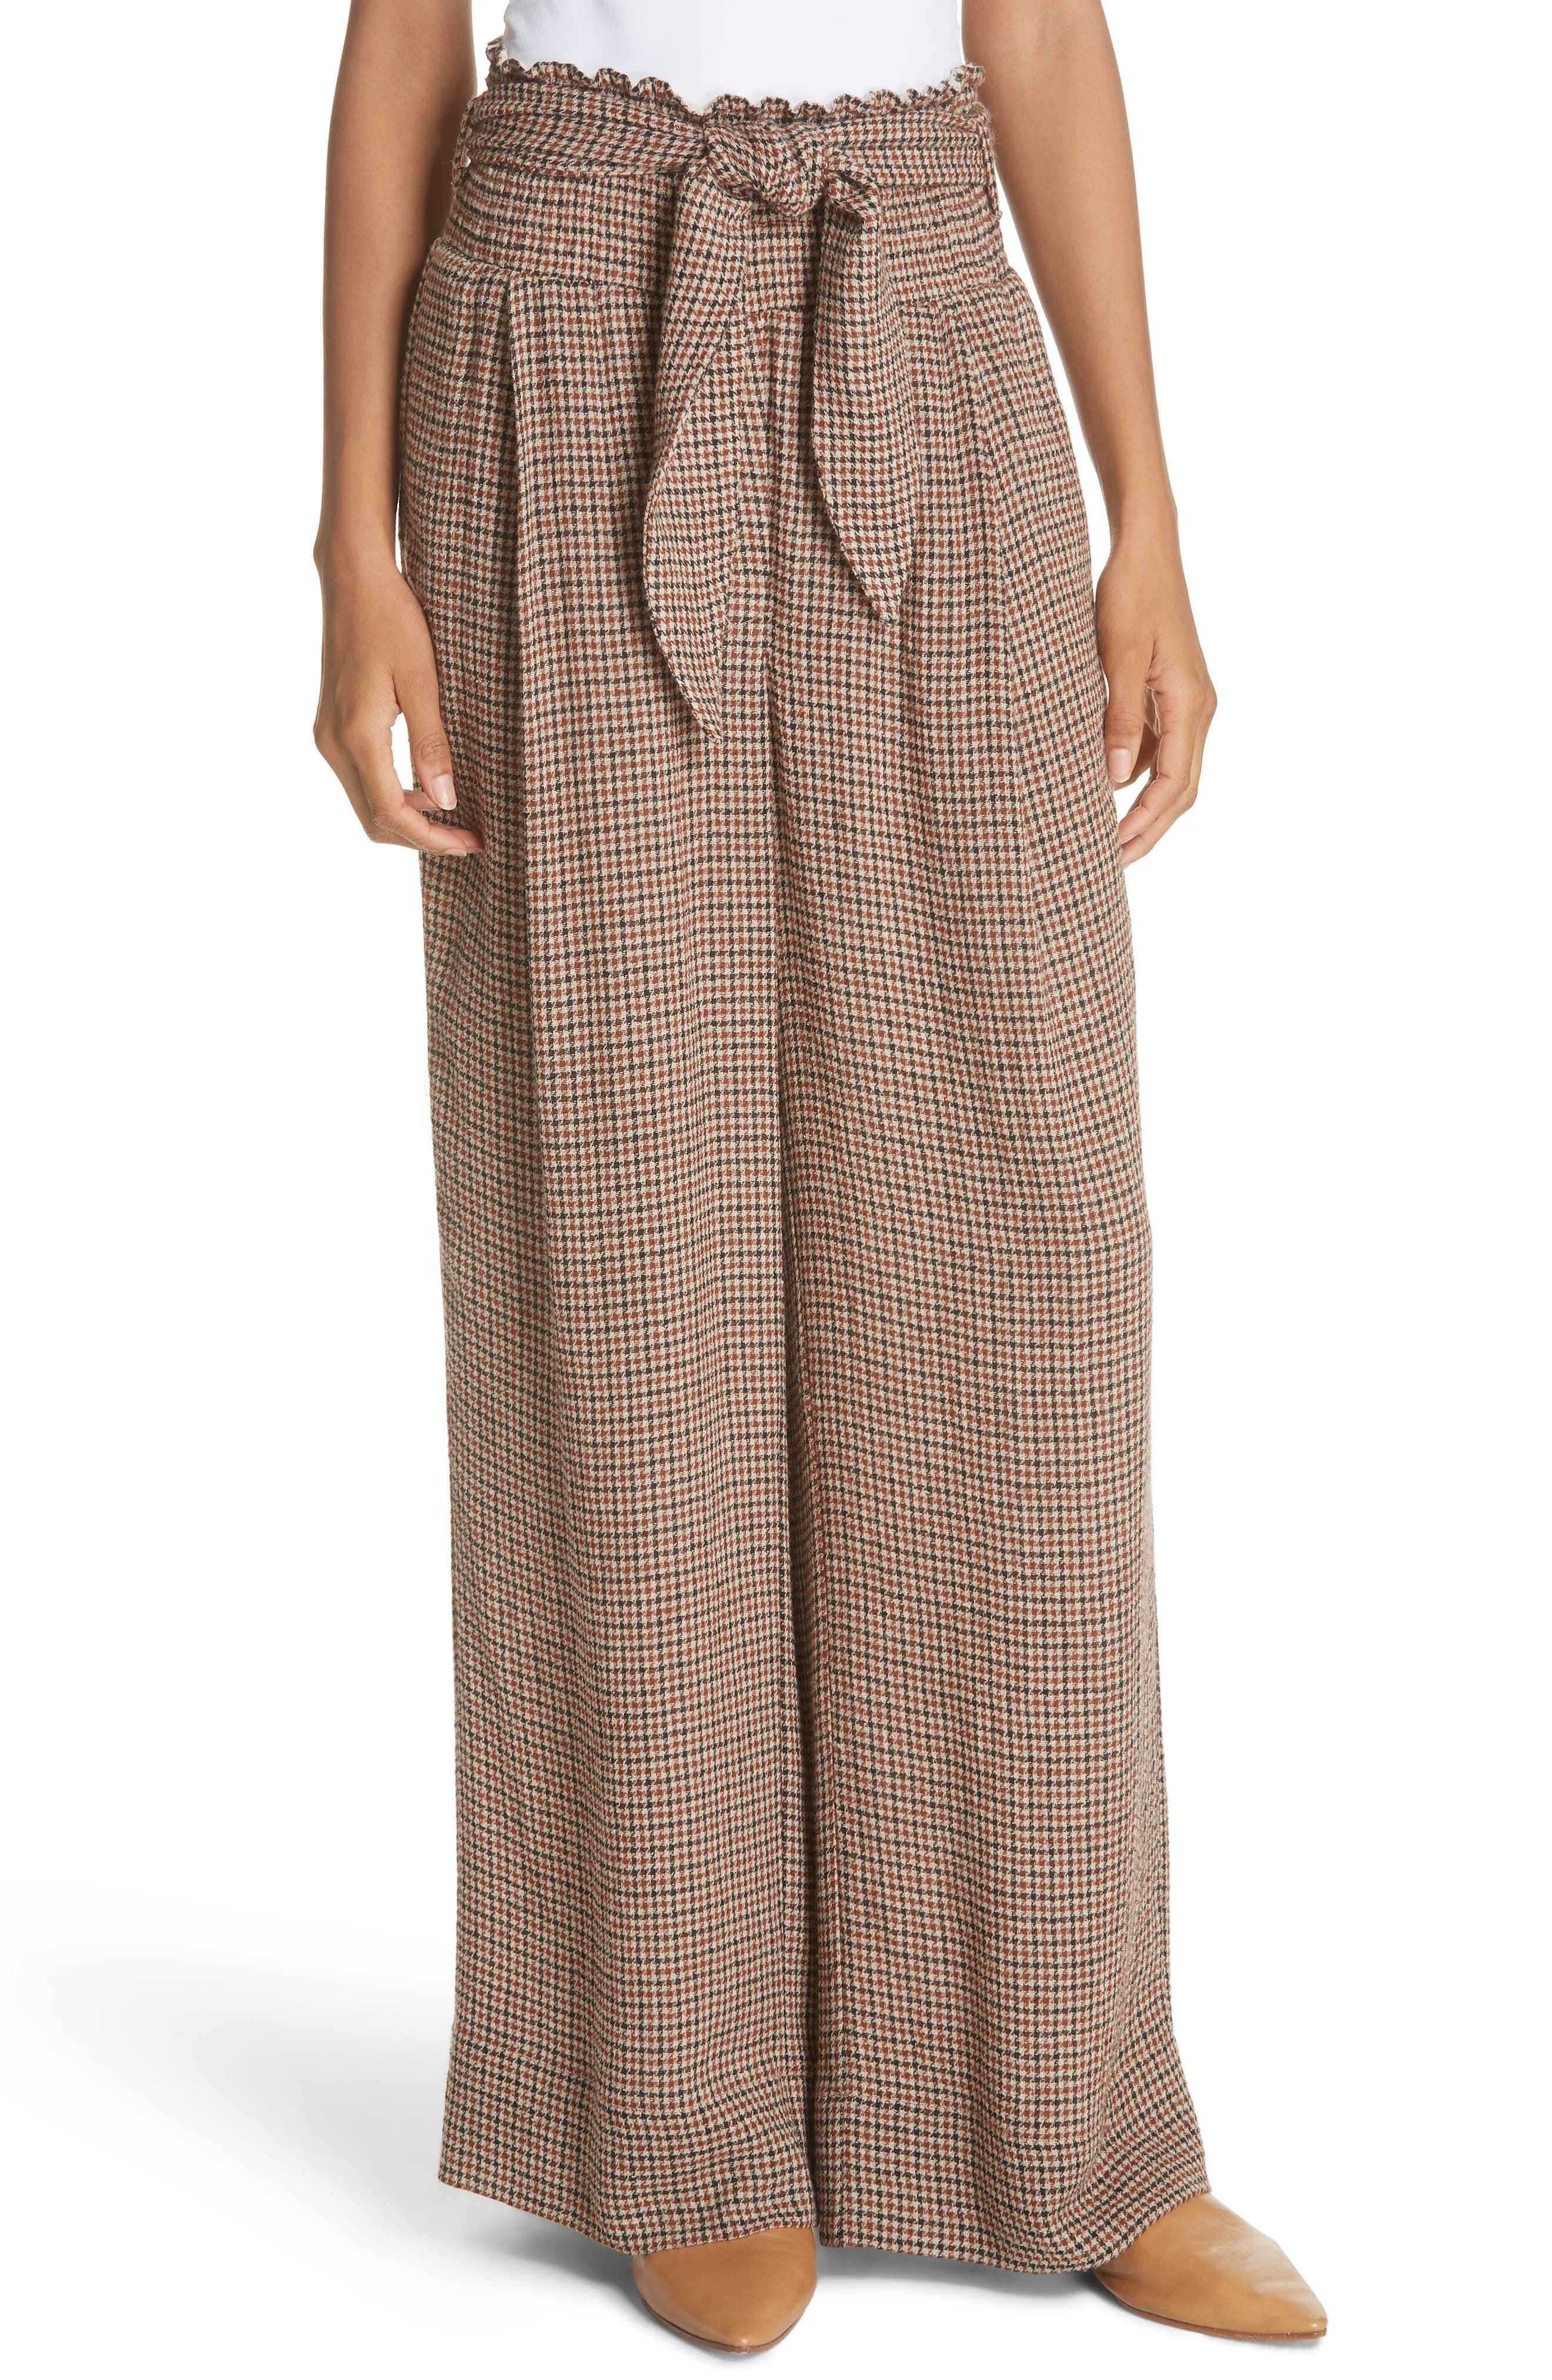 Private Houndstooth Tie Waist Pants,                             Main thumbnail 1, color,                             CHECK